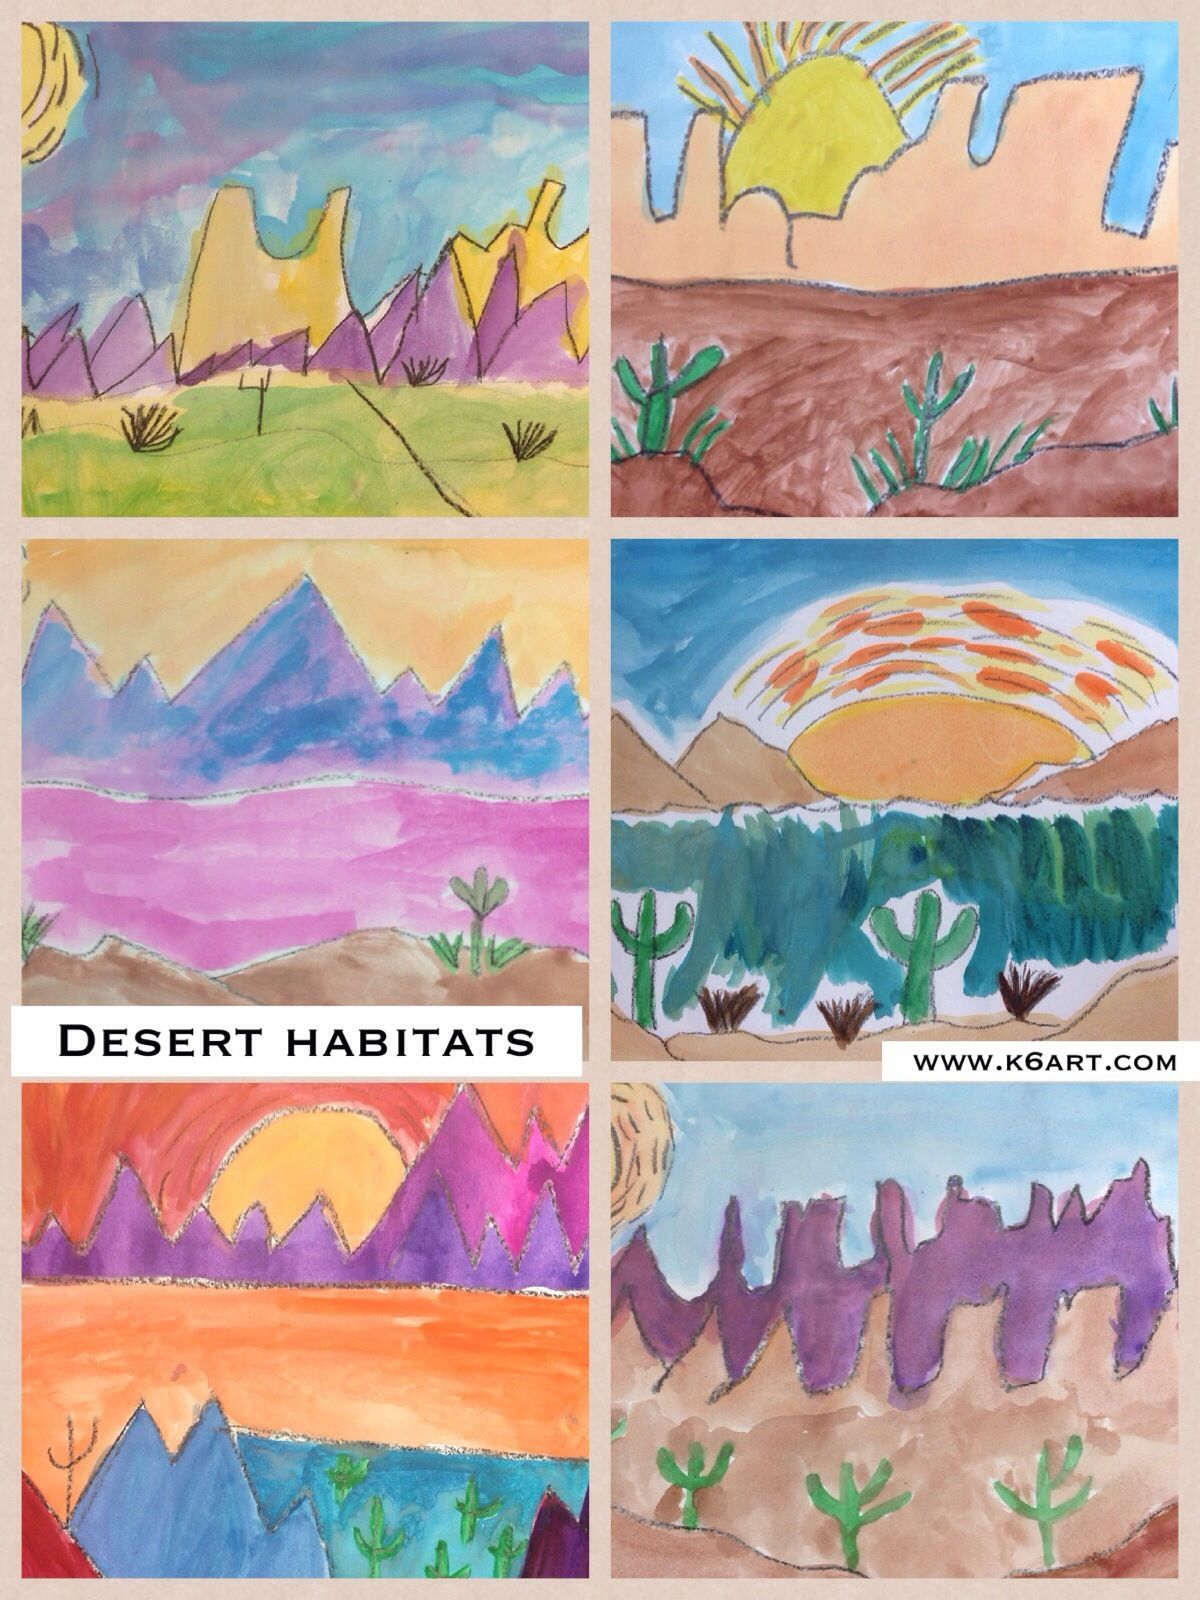 Desertification: Causes, Effects and Control of Desertification